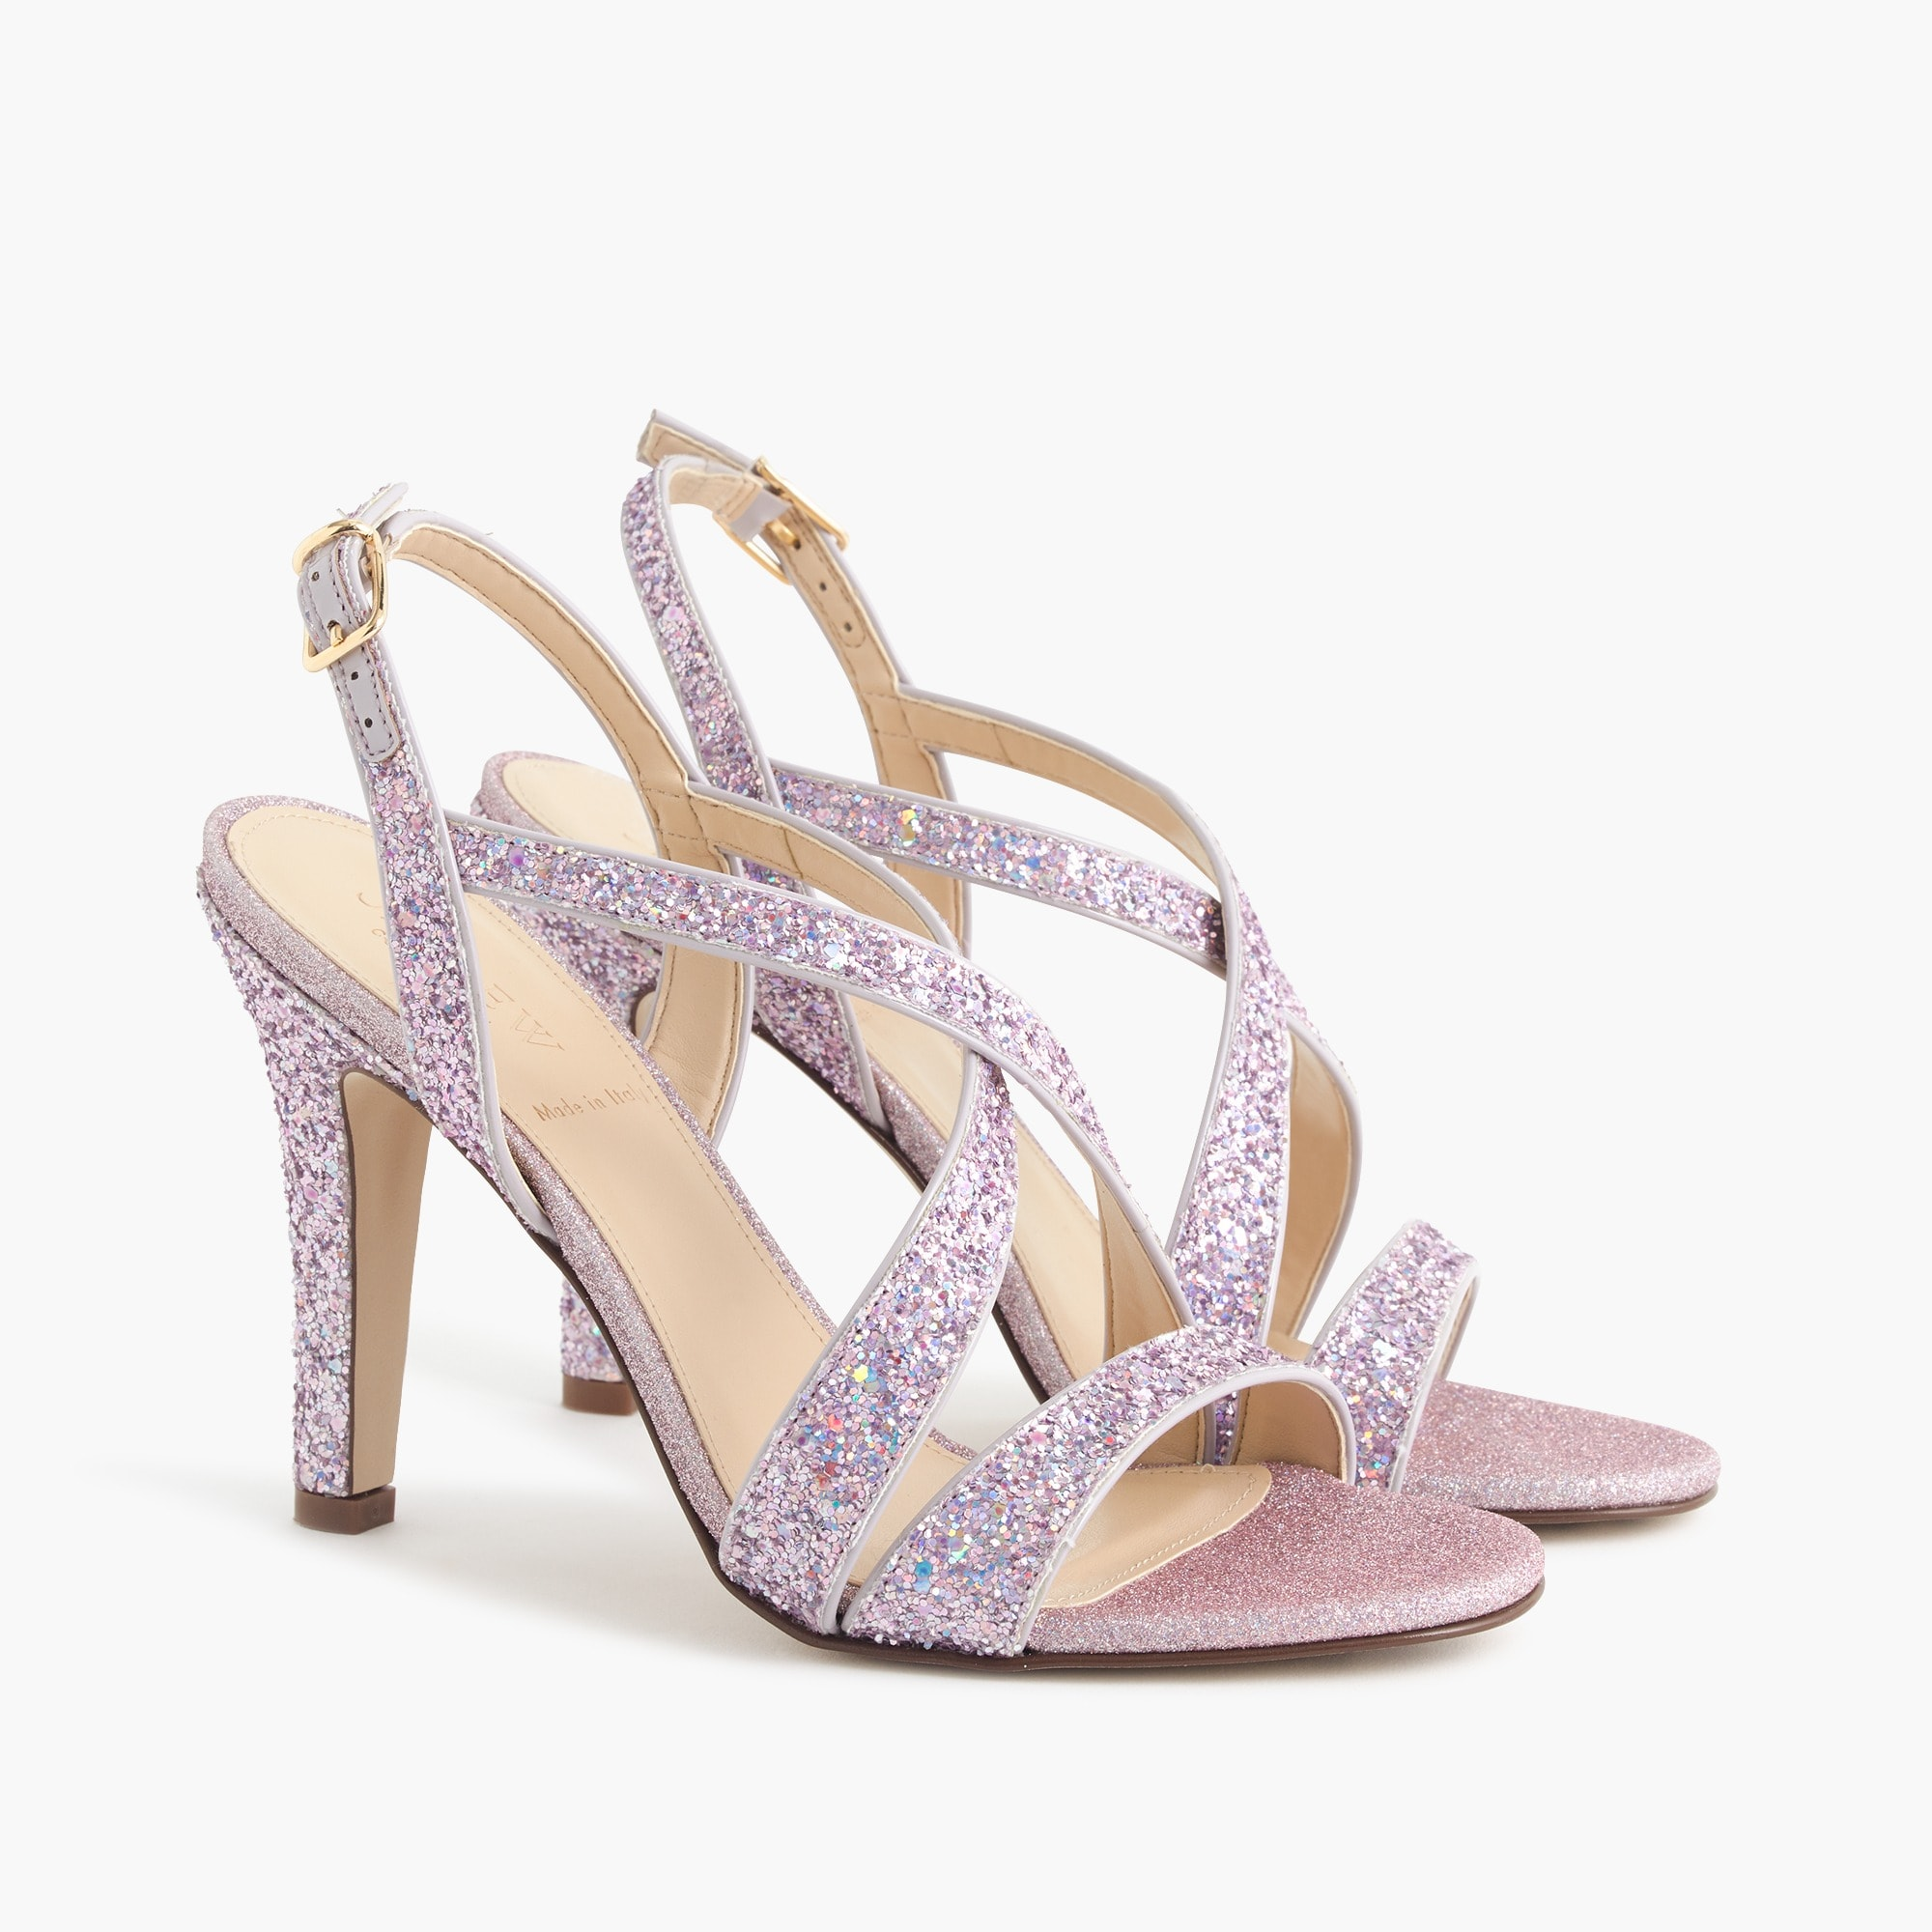 Image 1 for Crisscross strappy heels (105mm) in glitter